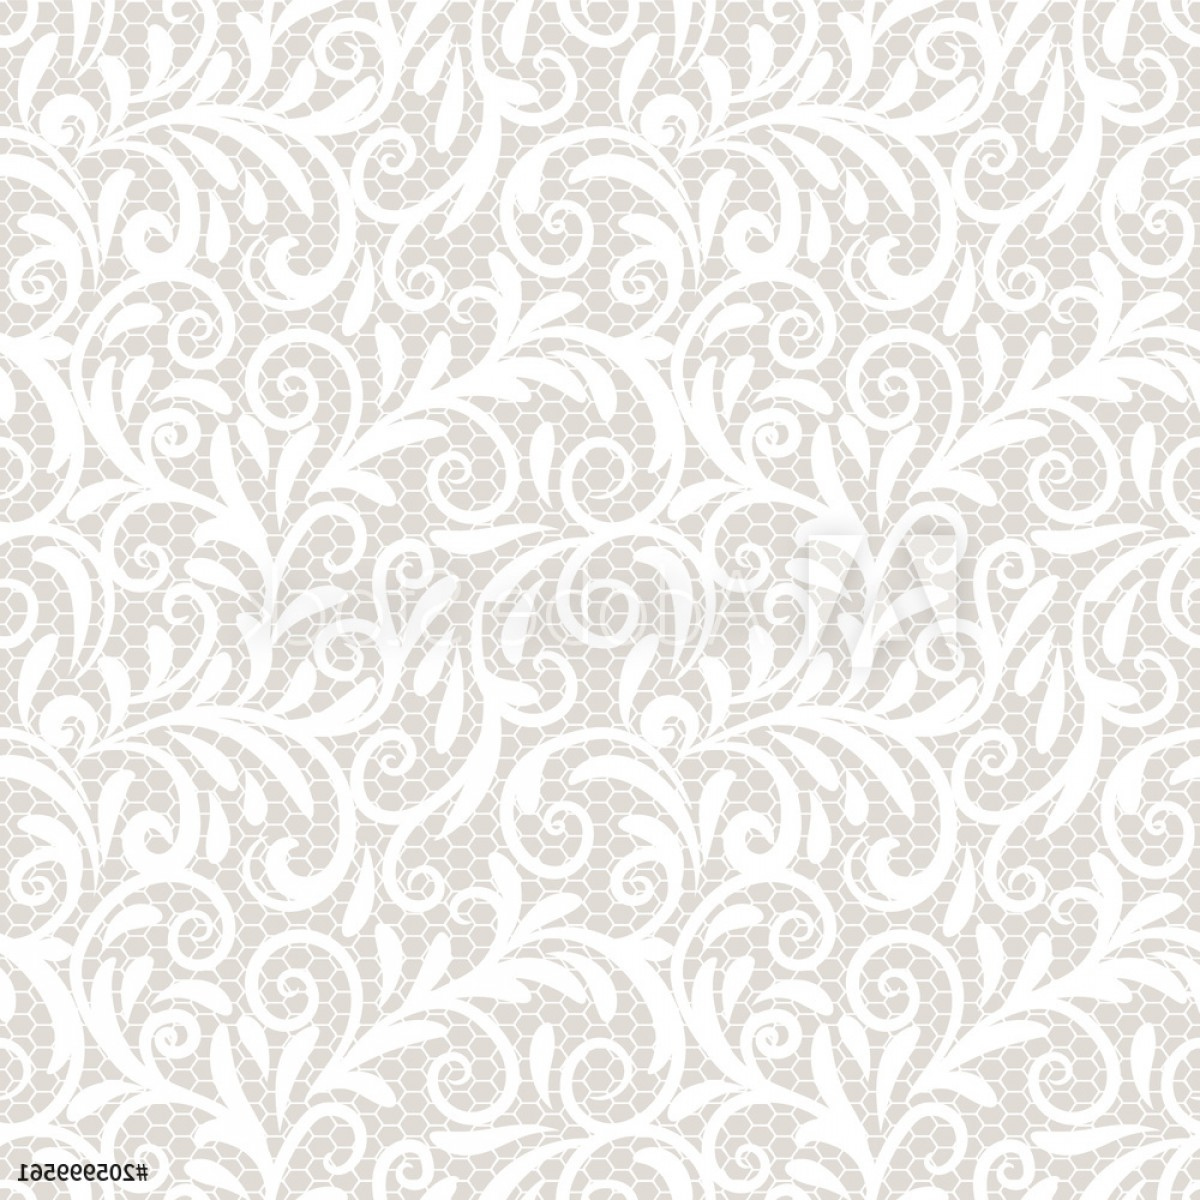 Tulle Black Lace Pattern Vector: Vintage Lace Ornament Elegant Tulle Texture Vector Seamless Pattern F